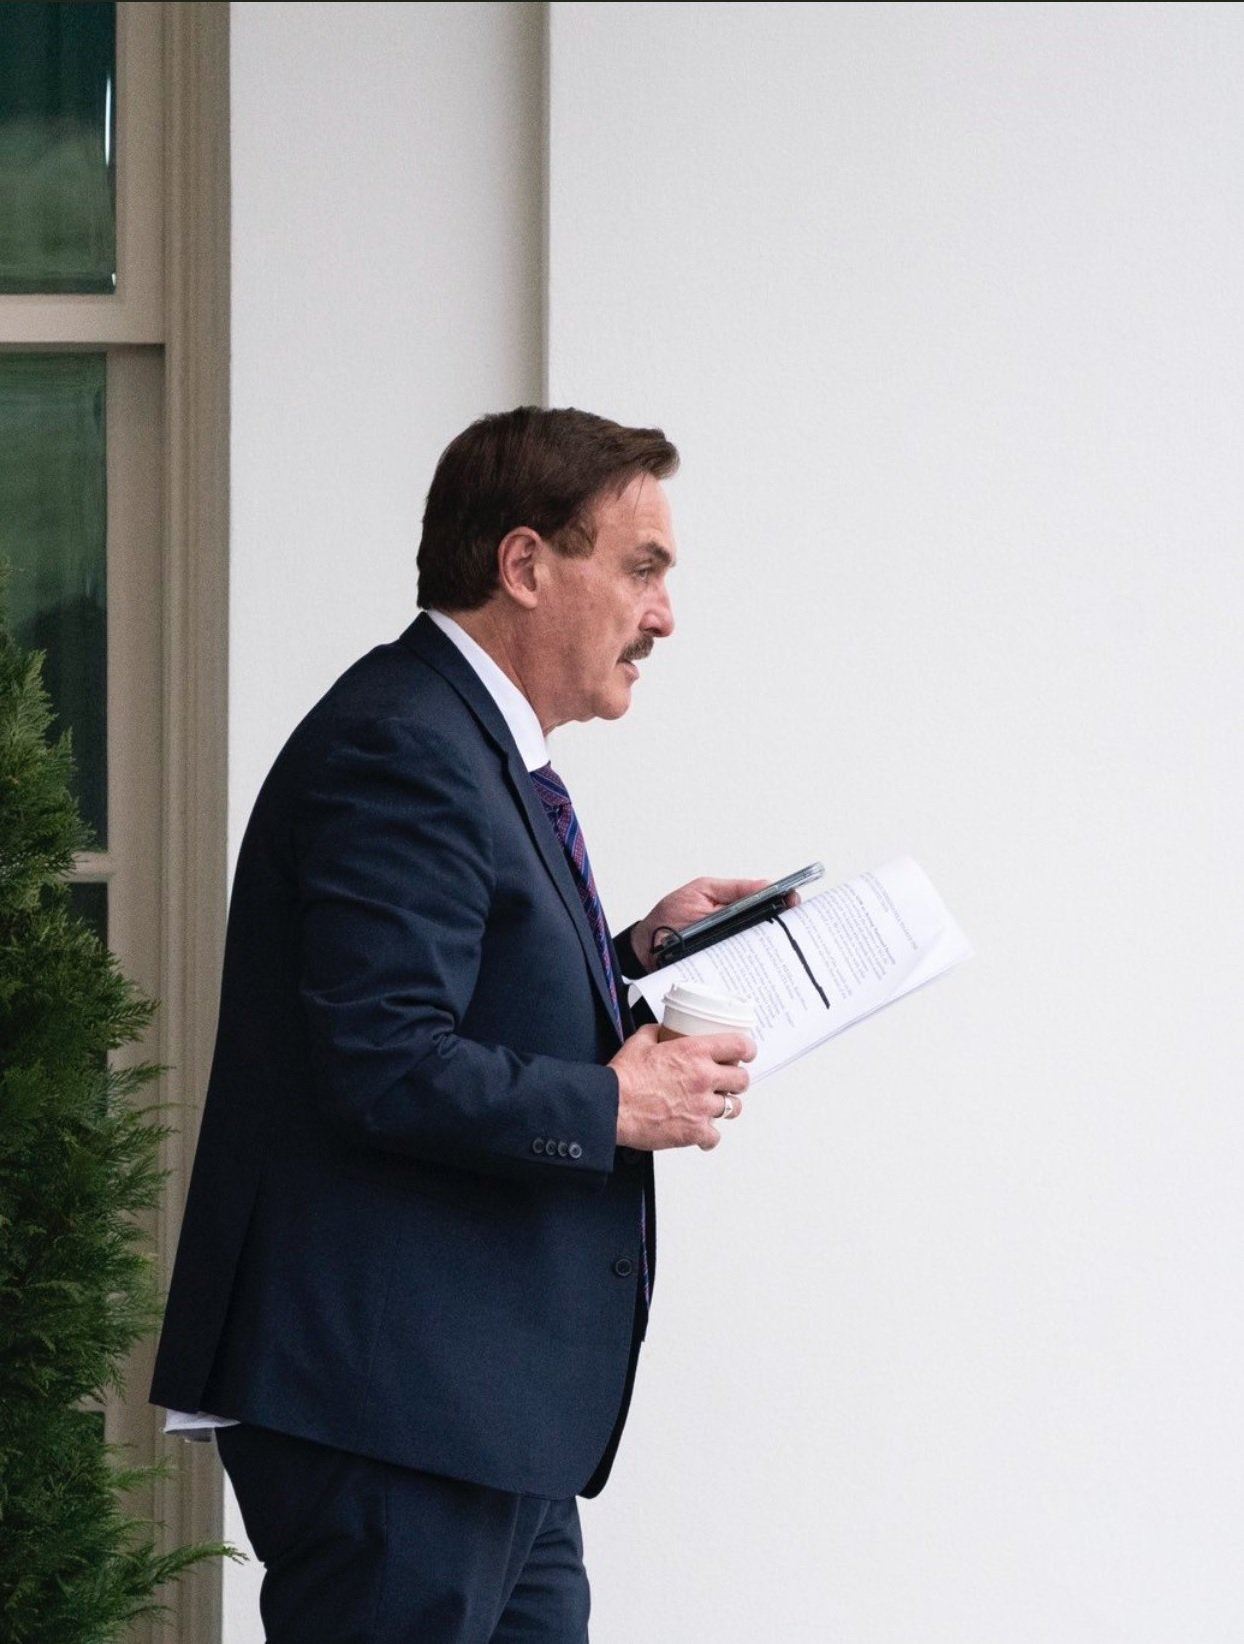 BREAKING: Mike Lindell Visits Trump in White House – Then Media Captures Pictures of His Notes to President Referring to Crimes and Insurrection Act